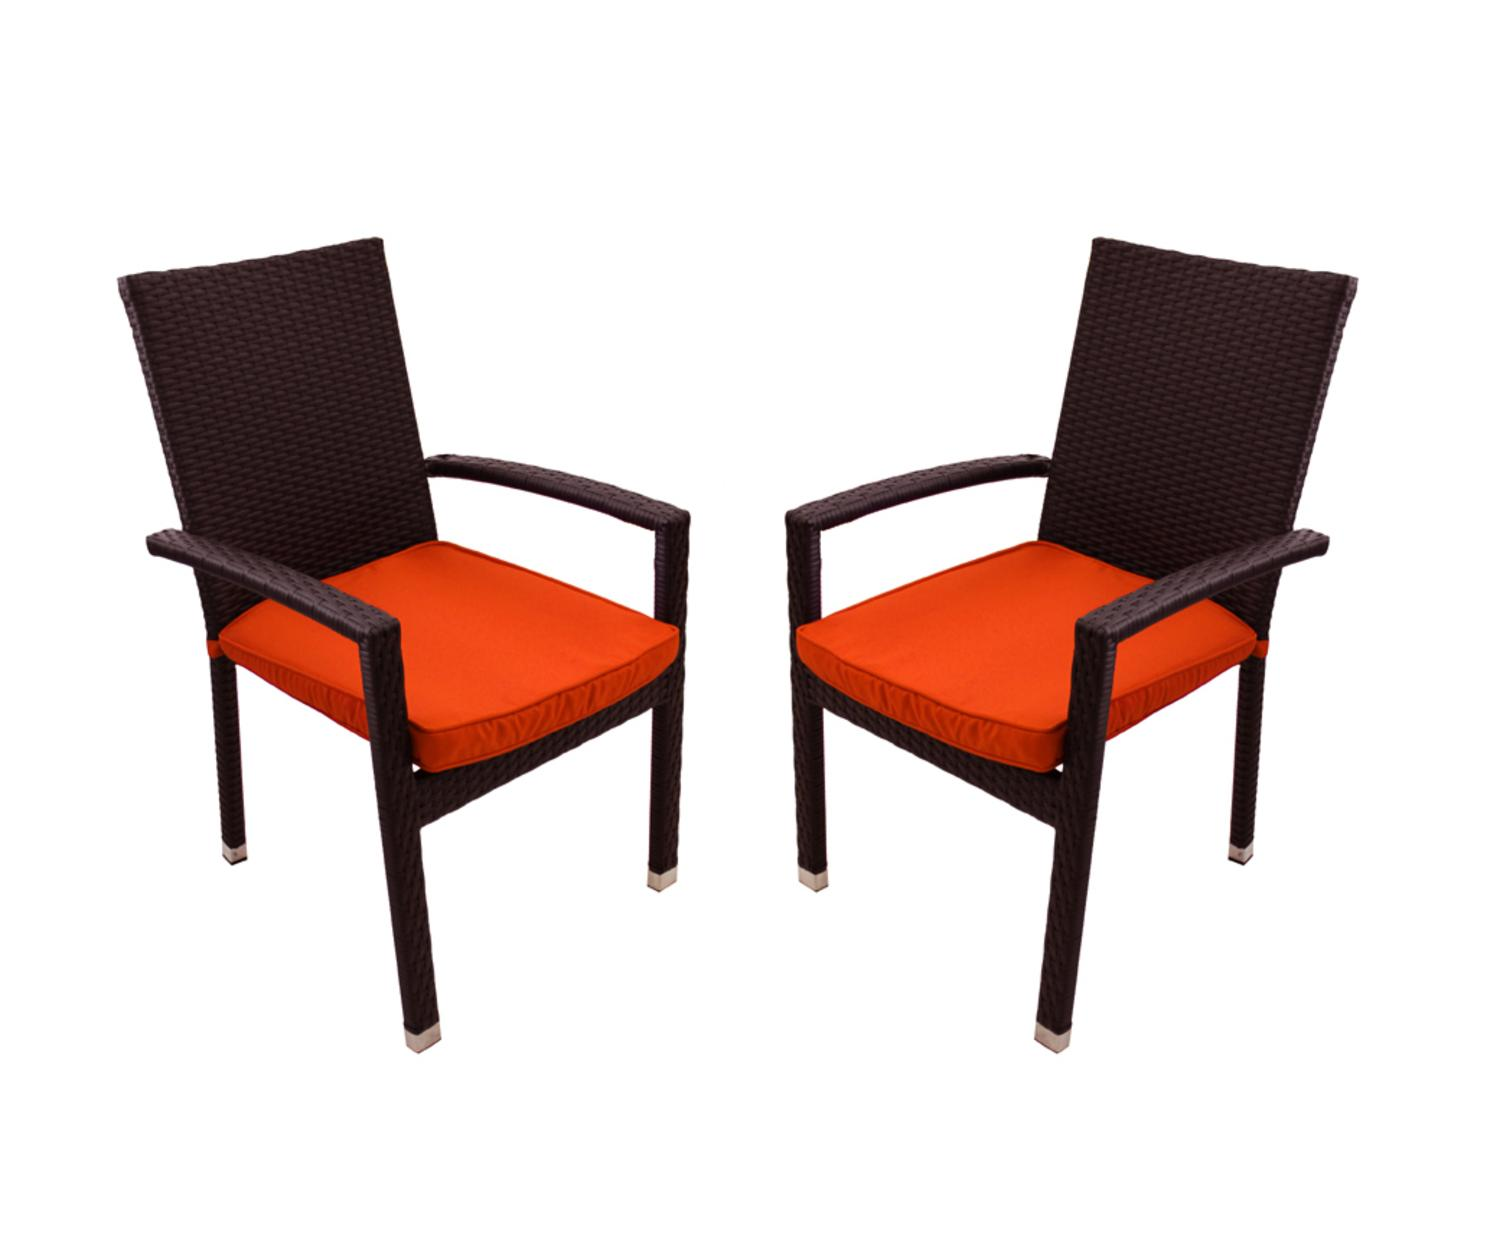 Set Of 2 Black Resin Wicker Outdoor Patio Furniture Dining Chairs Orange Cushions Hope And